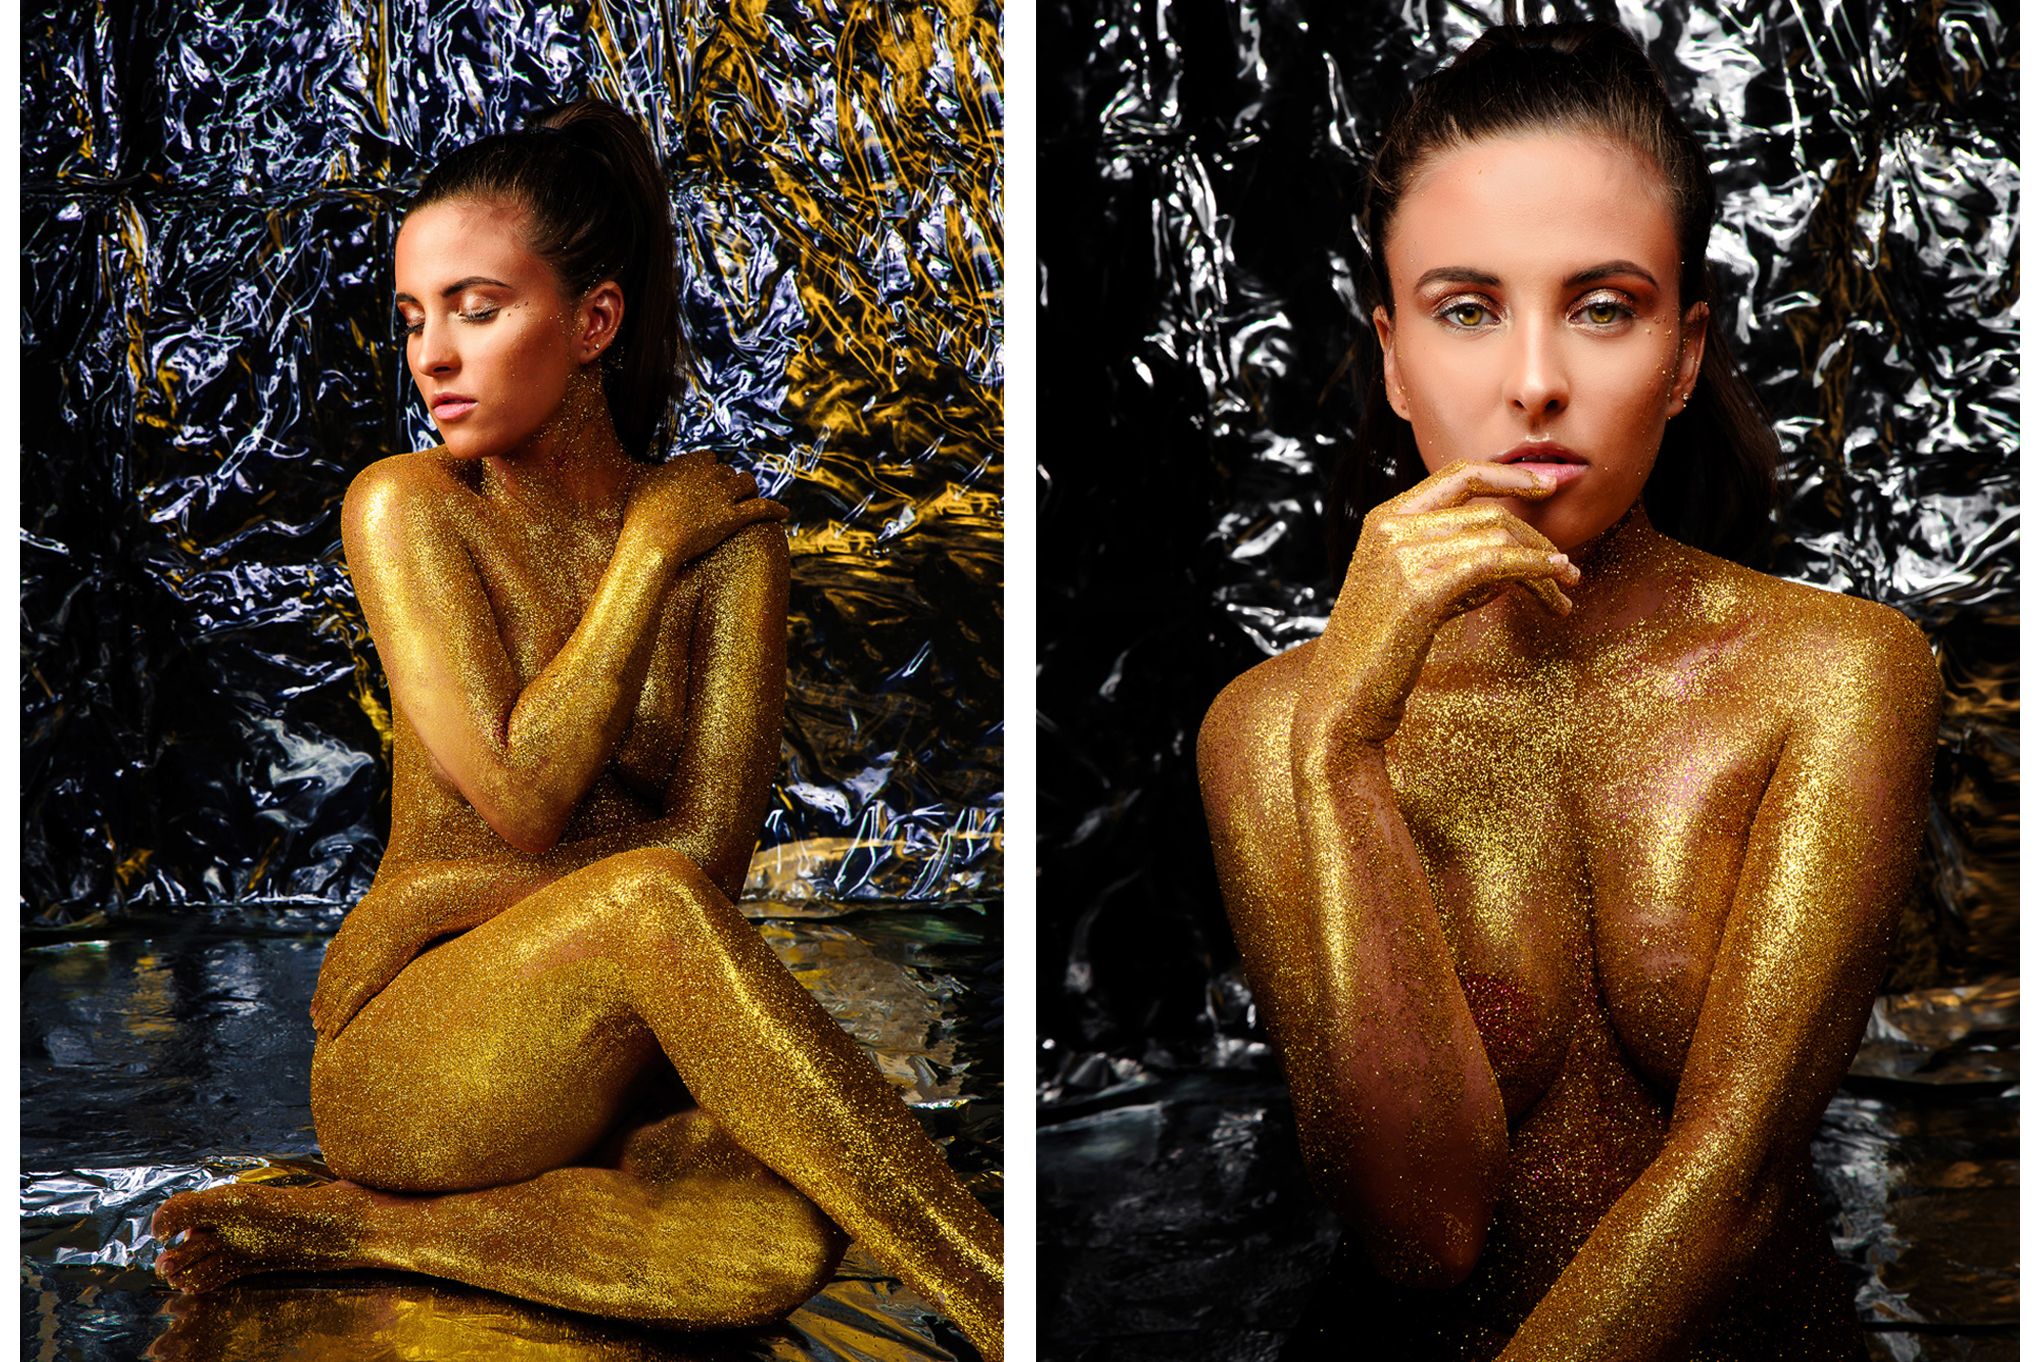 pipe_gaber_glitter_photoshoot_golden_andrea_gio_03.JPG